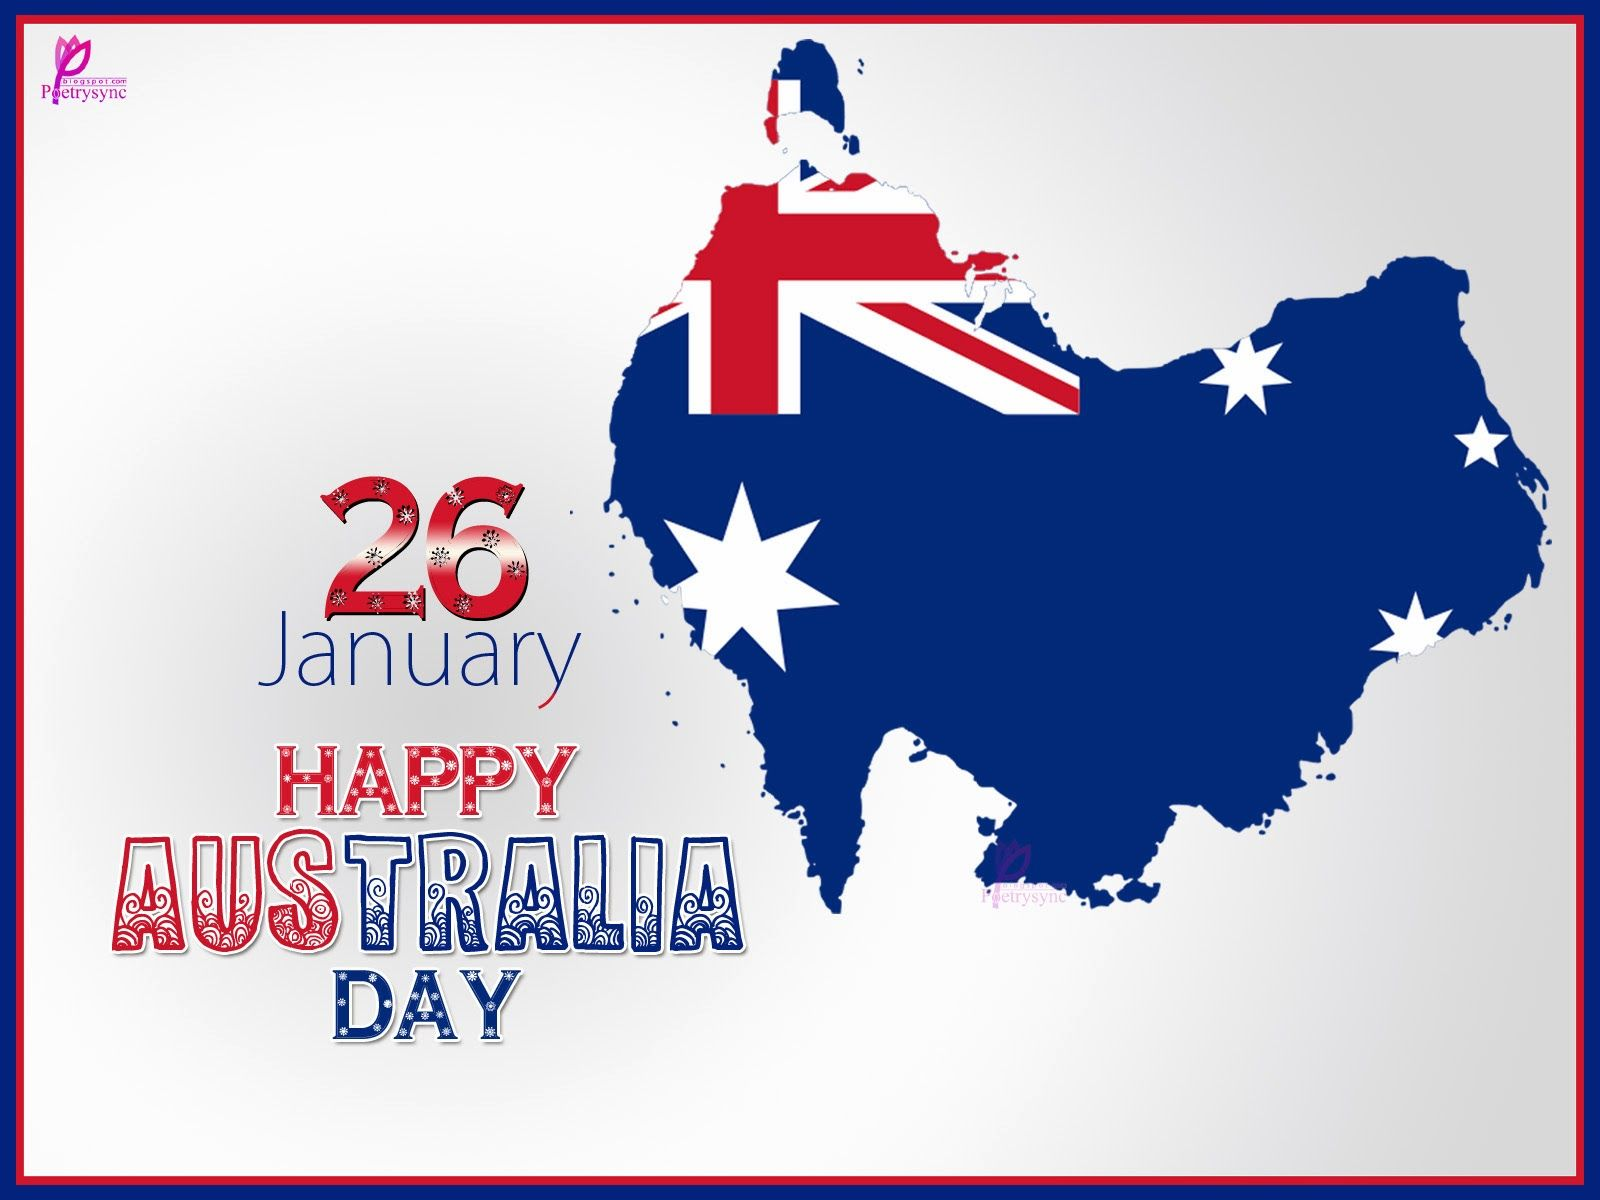 Happy Australia Day Greetings and Wishes Image Wallpaper 1600x1200